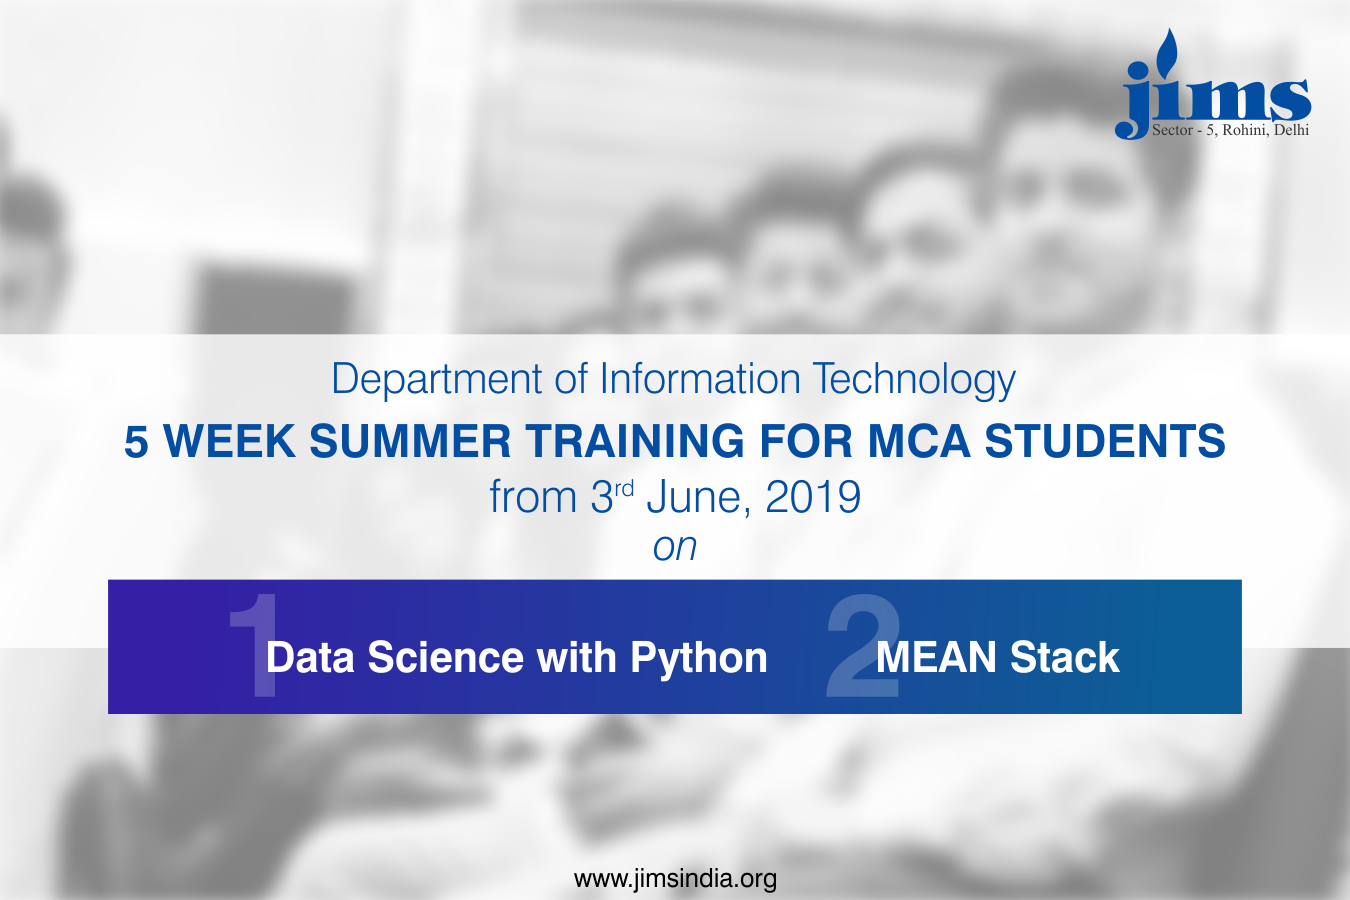 IT Department of JIMS Rohini is organizing 5 Week Summer Training for its MCA Students from June 3, 2019, on Data Science with Python and Mean Stack.